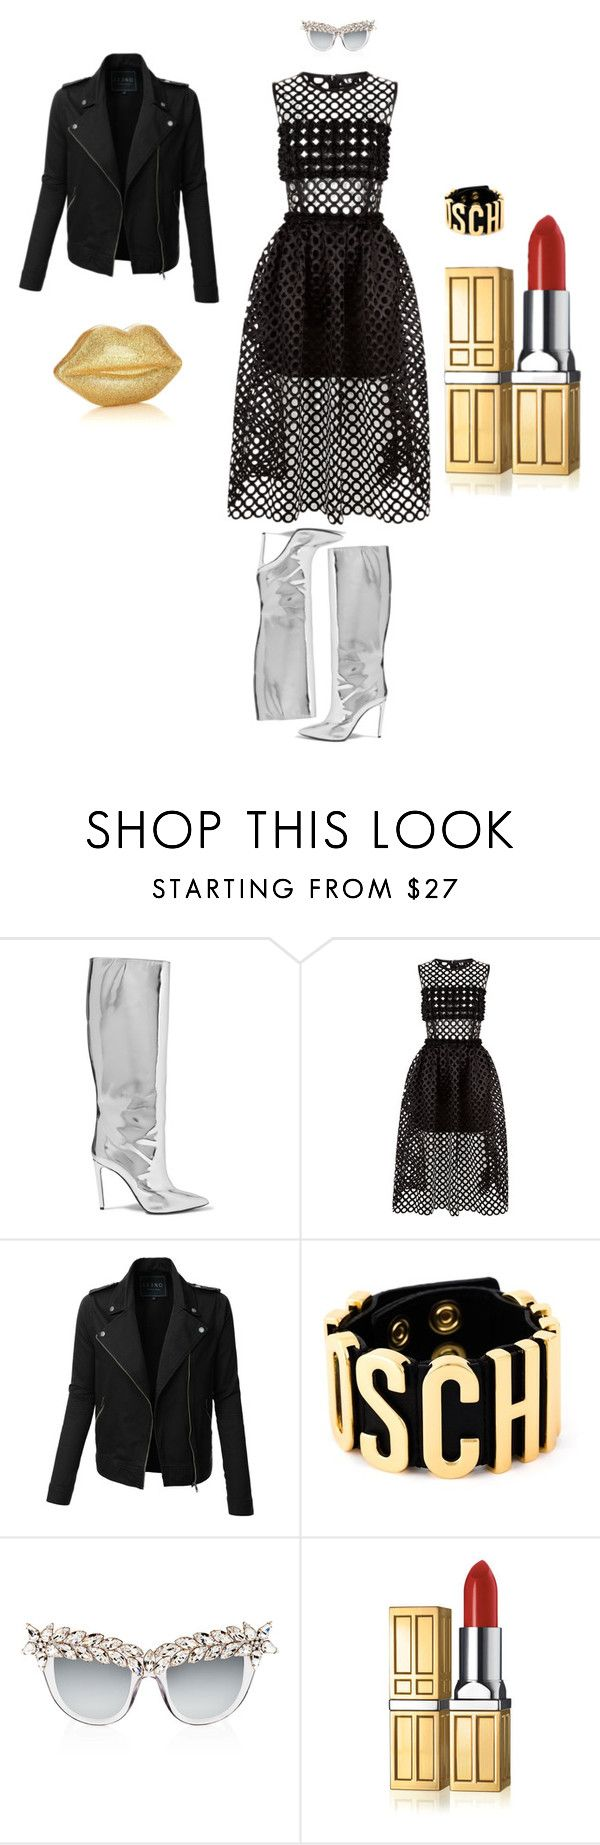 """June"" by wildpatchouli on Polyvore featuring Balenciaga, Paskal, LE3NO, Moschino, Anna-Karin Karlsson, Lulu Guinness, Elizabeth Arden, chic and rockerstyle"